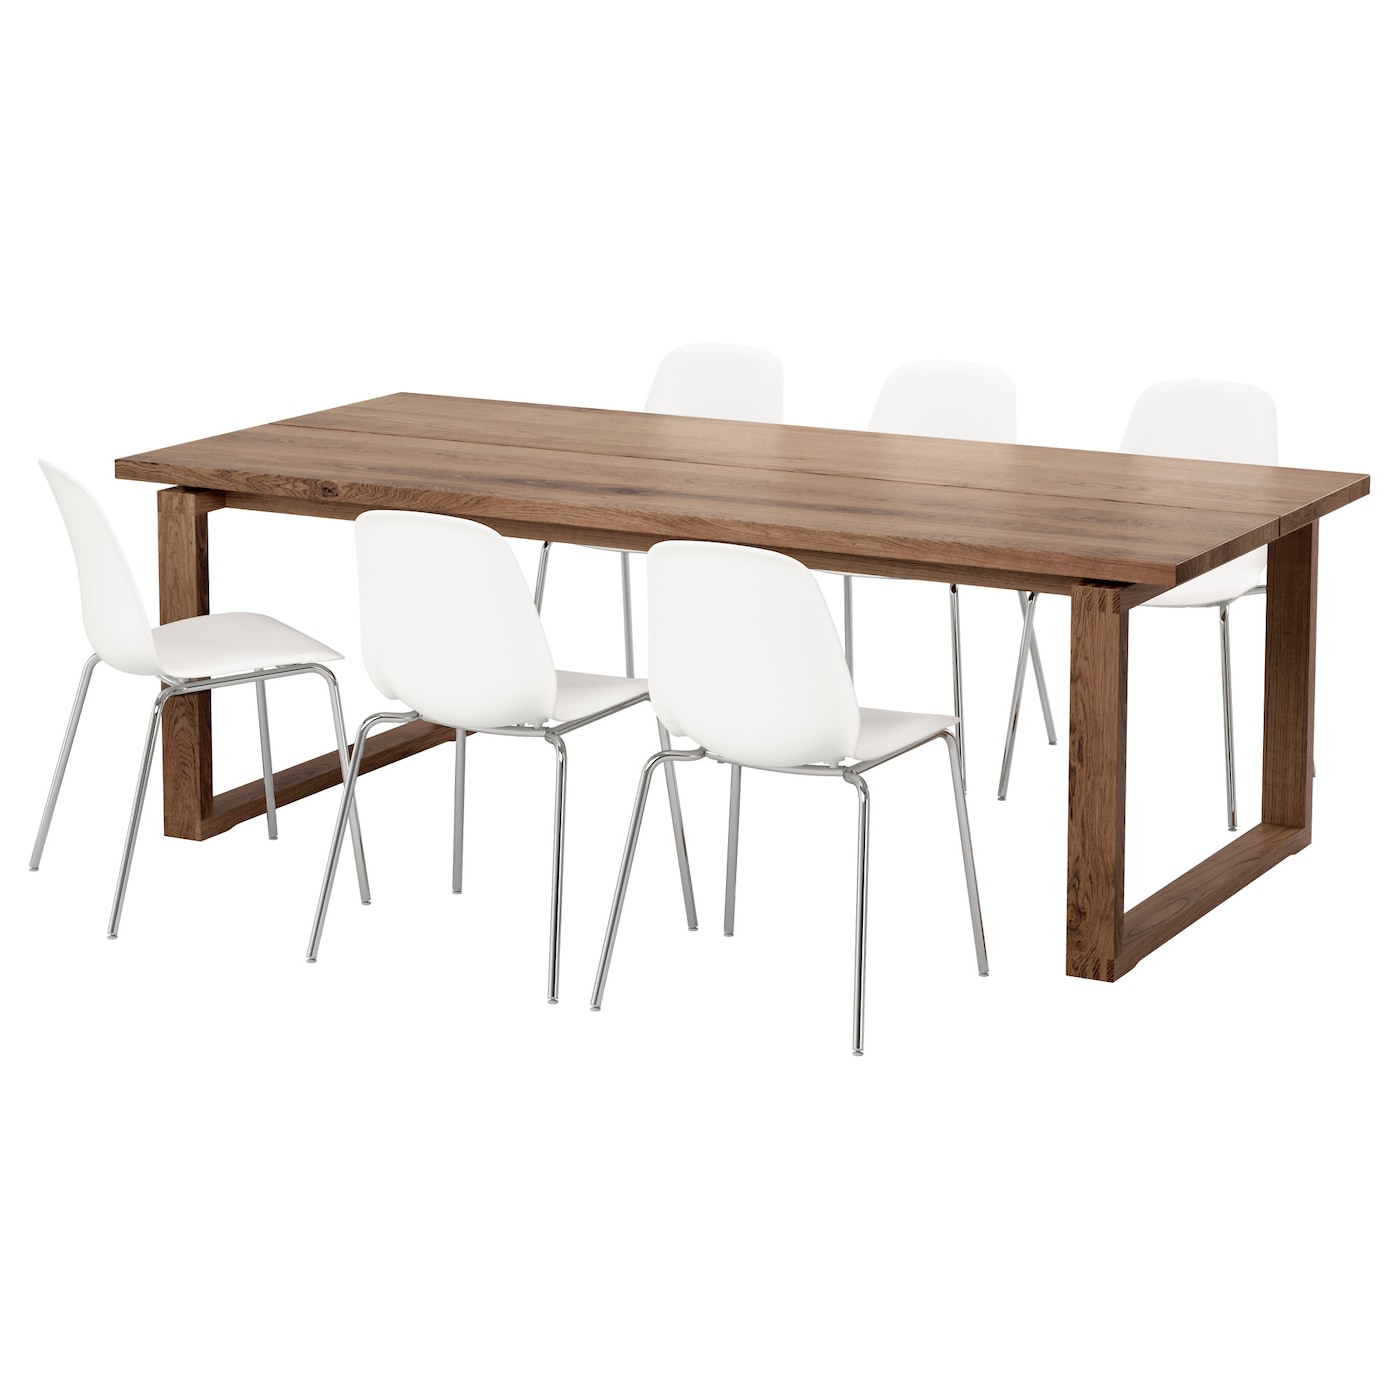 Leifarne m rbyl nga table and 6 chairs brown white 220x100 cm ikea Dining bench ikea